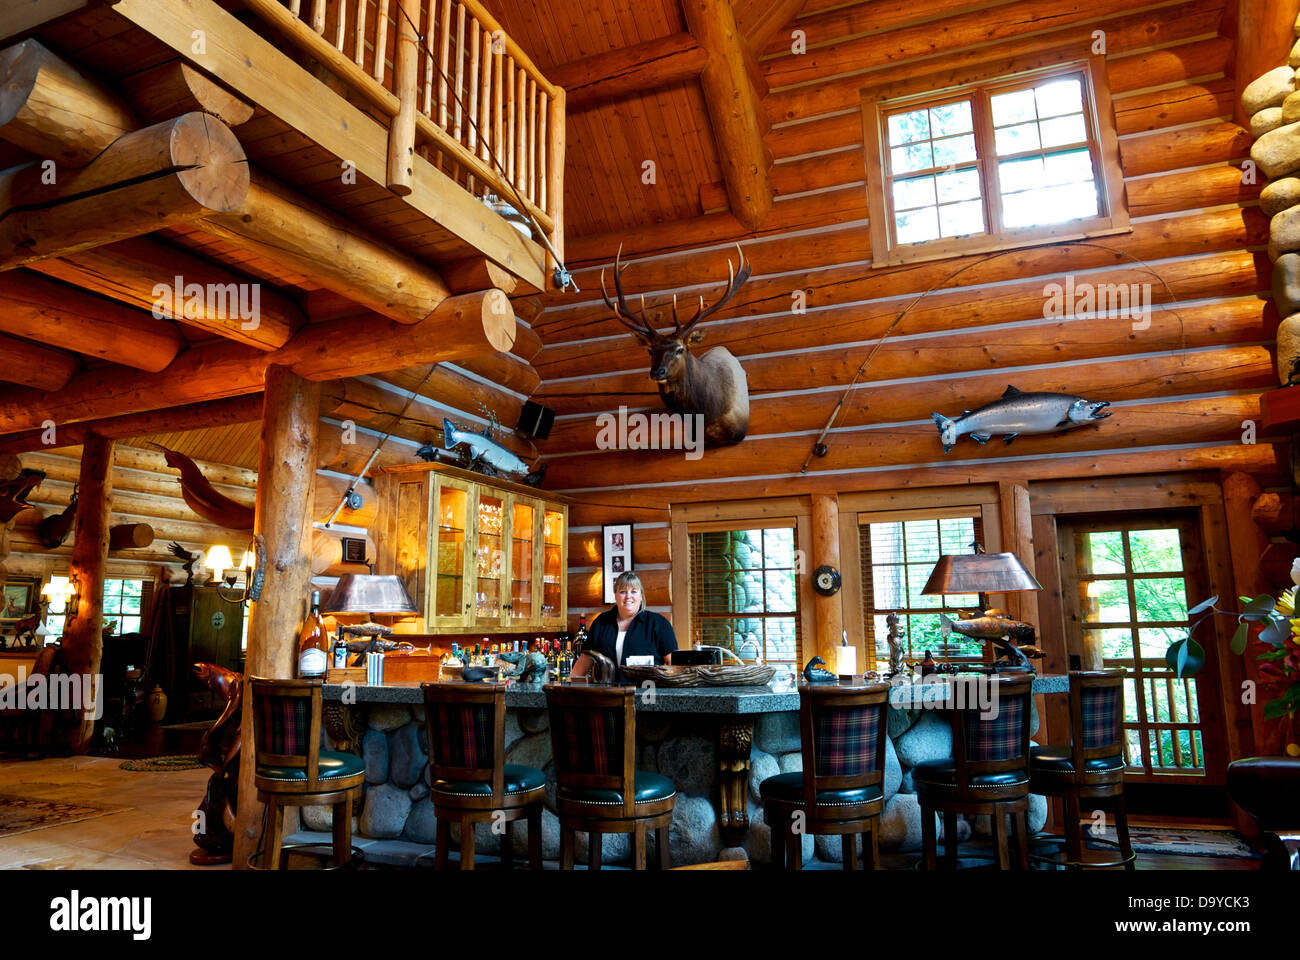 Bartender well stocked guest bar in games room at The Lodge at Gold River luxury fishing resort - Stock Image